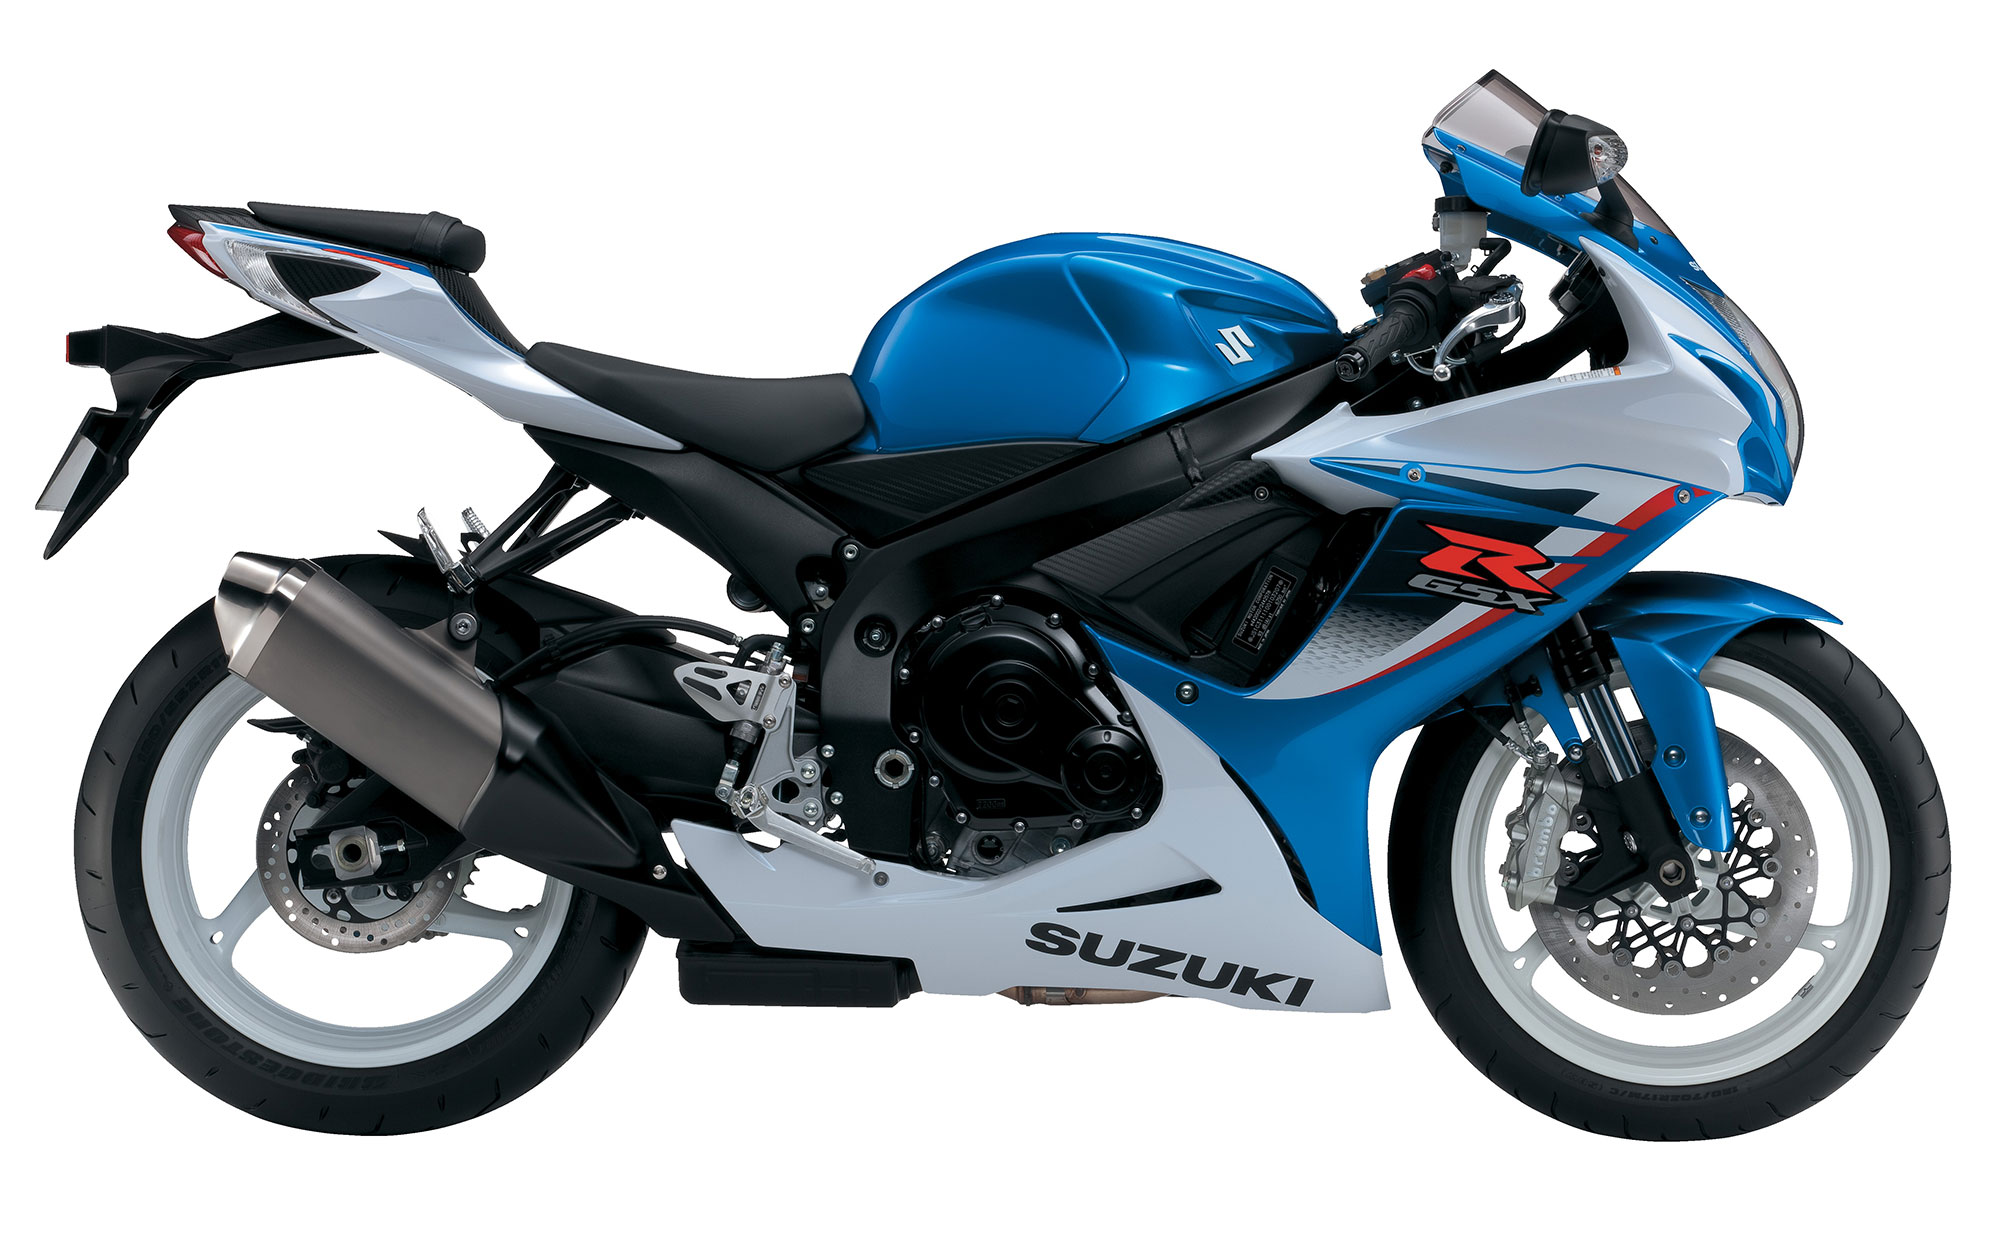 Suzuki Gsxr 750 For Sale >> 2014 GSXR-600 | Motorcycle template